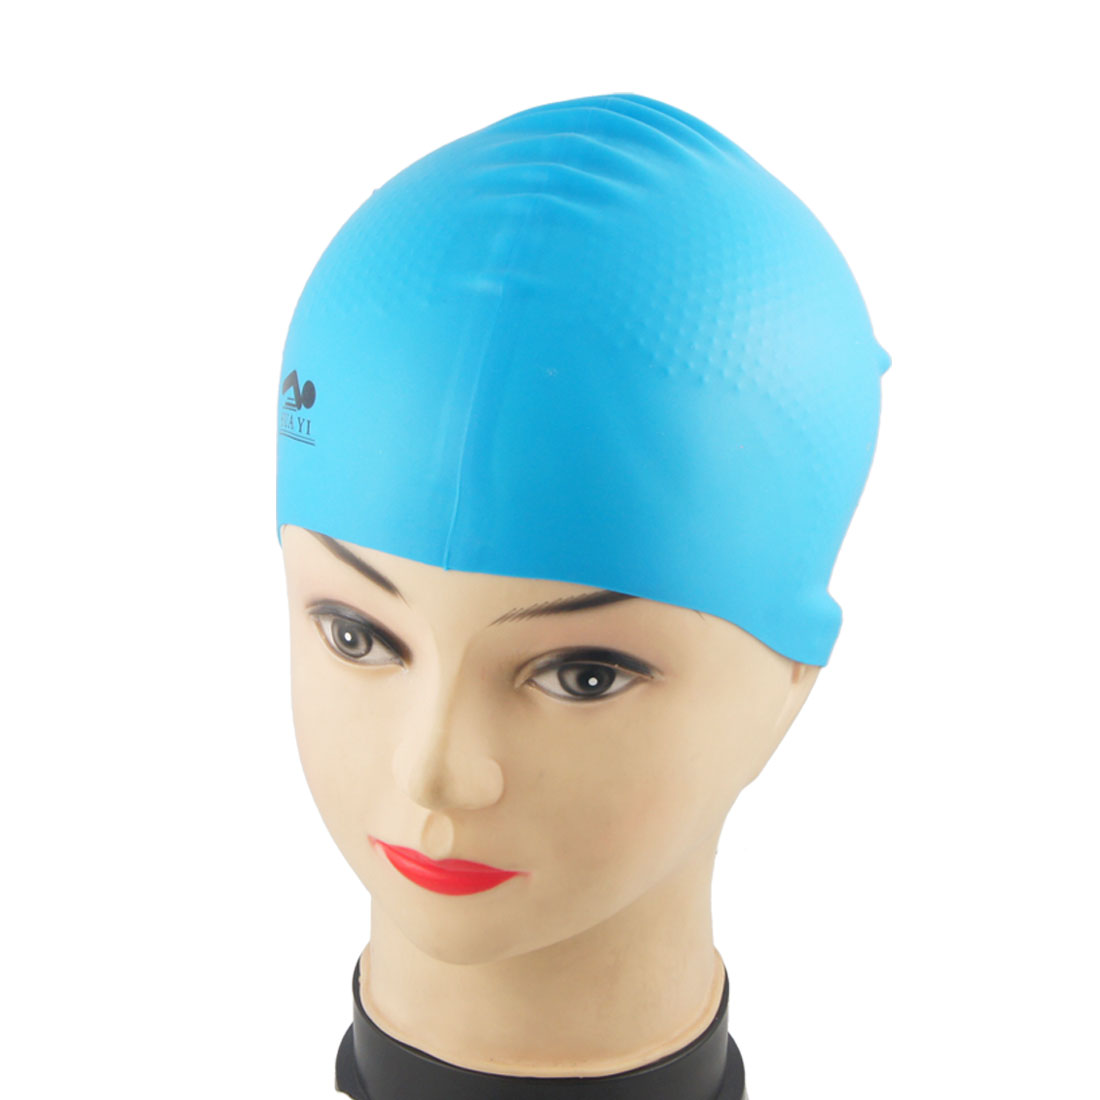 Soft Silicone Nonslip Sports Sky Blue Swimming Cap for Adult